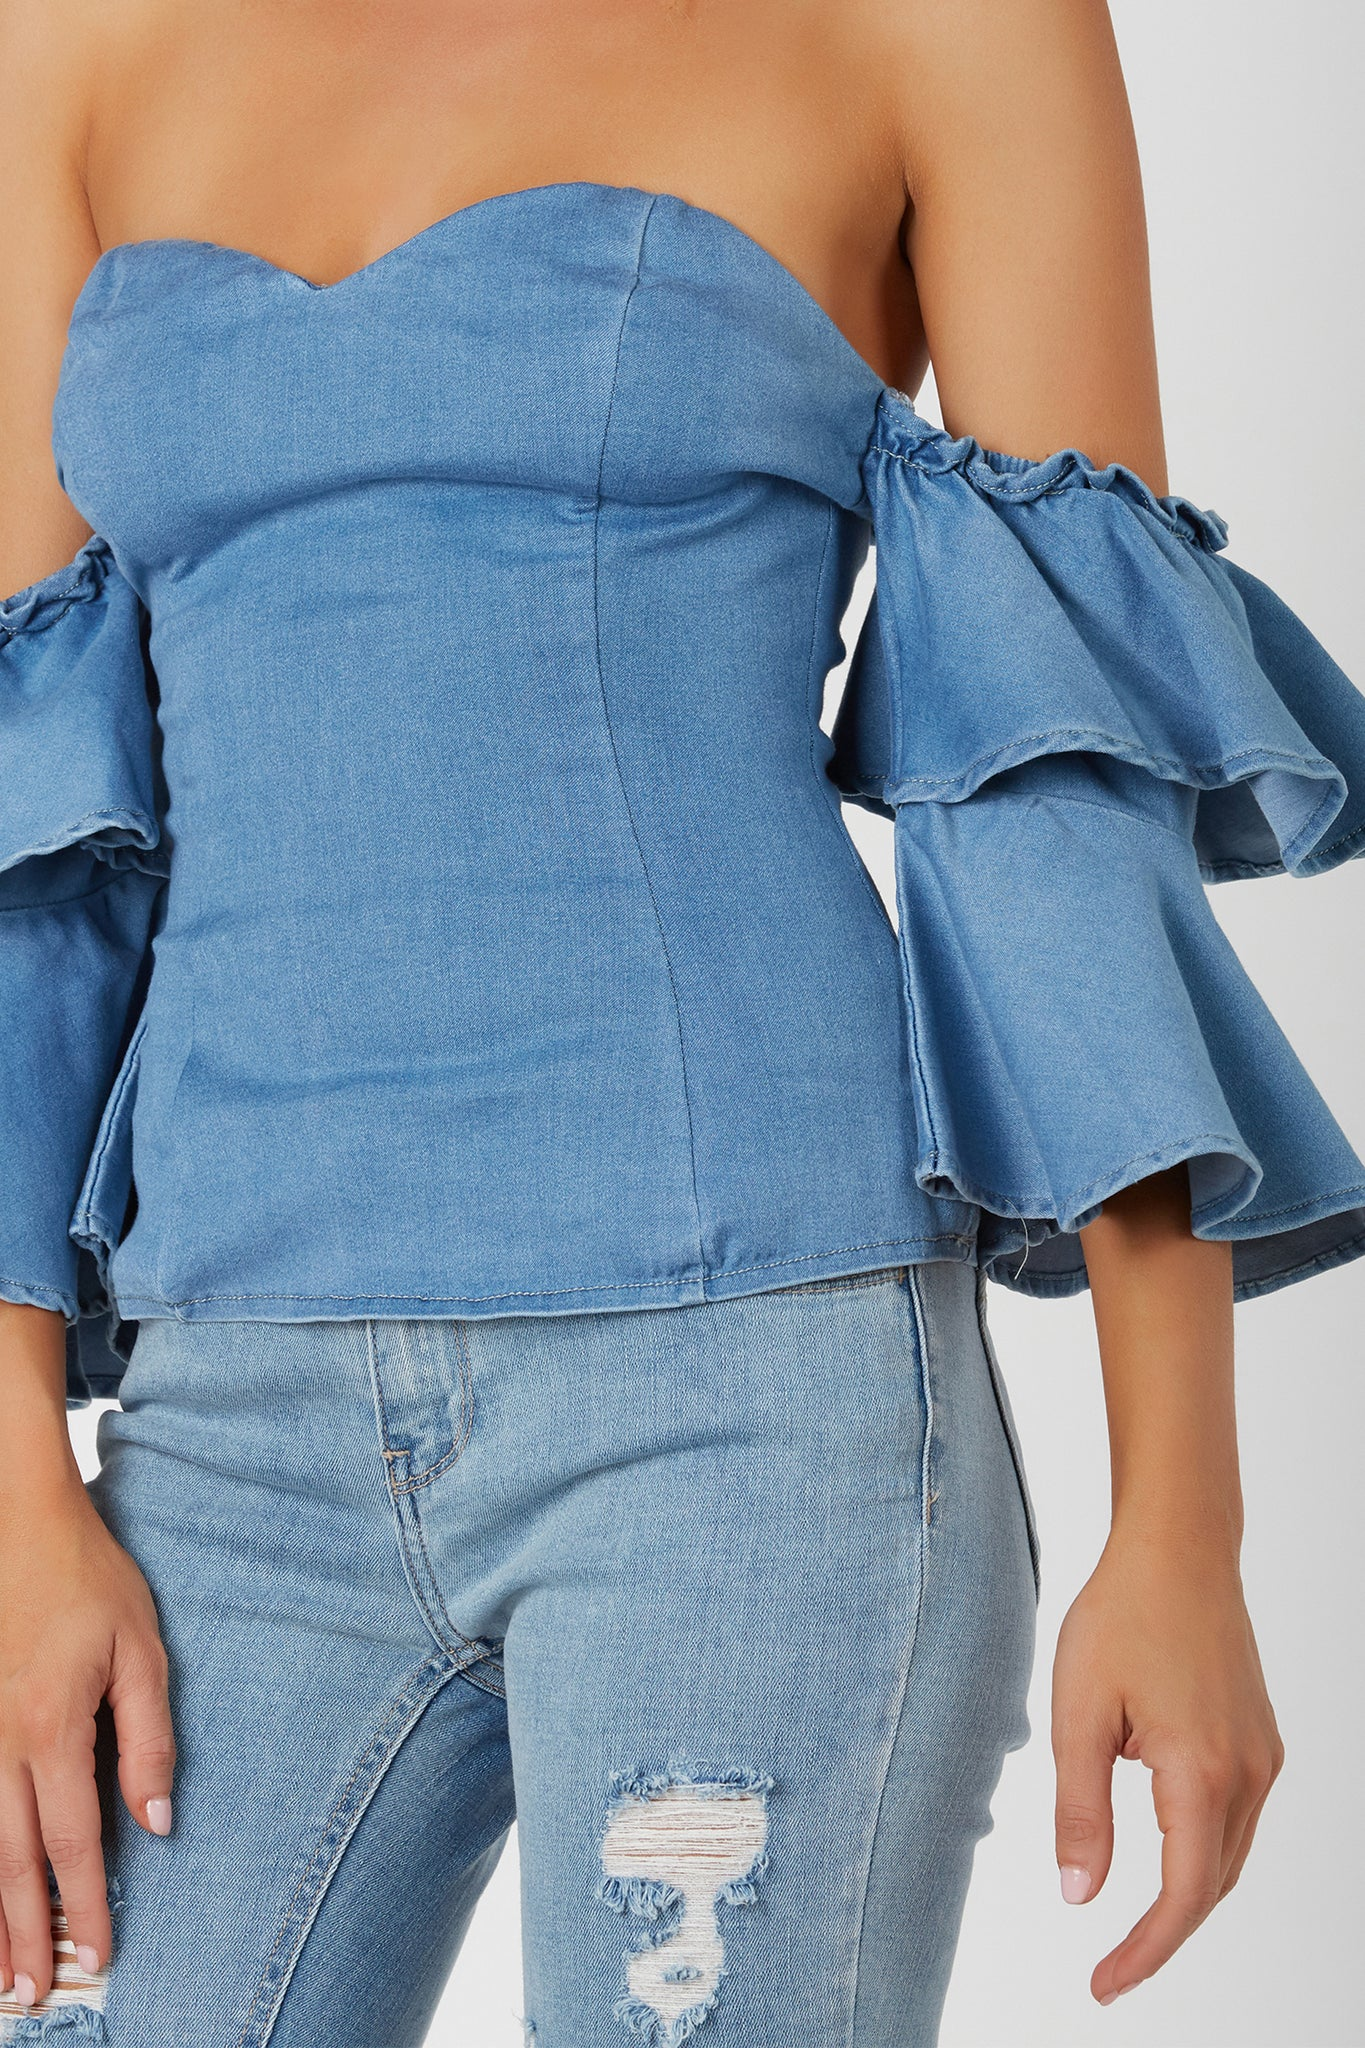 Flirty off shoulder top with chic denim finish. Sweetheart neckline with fun ruffled sleeves.